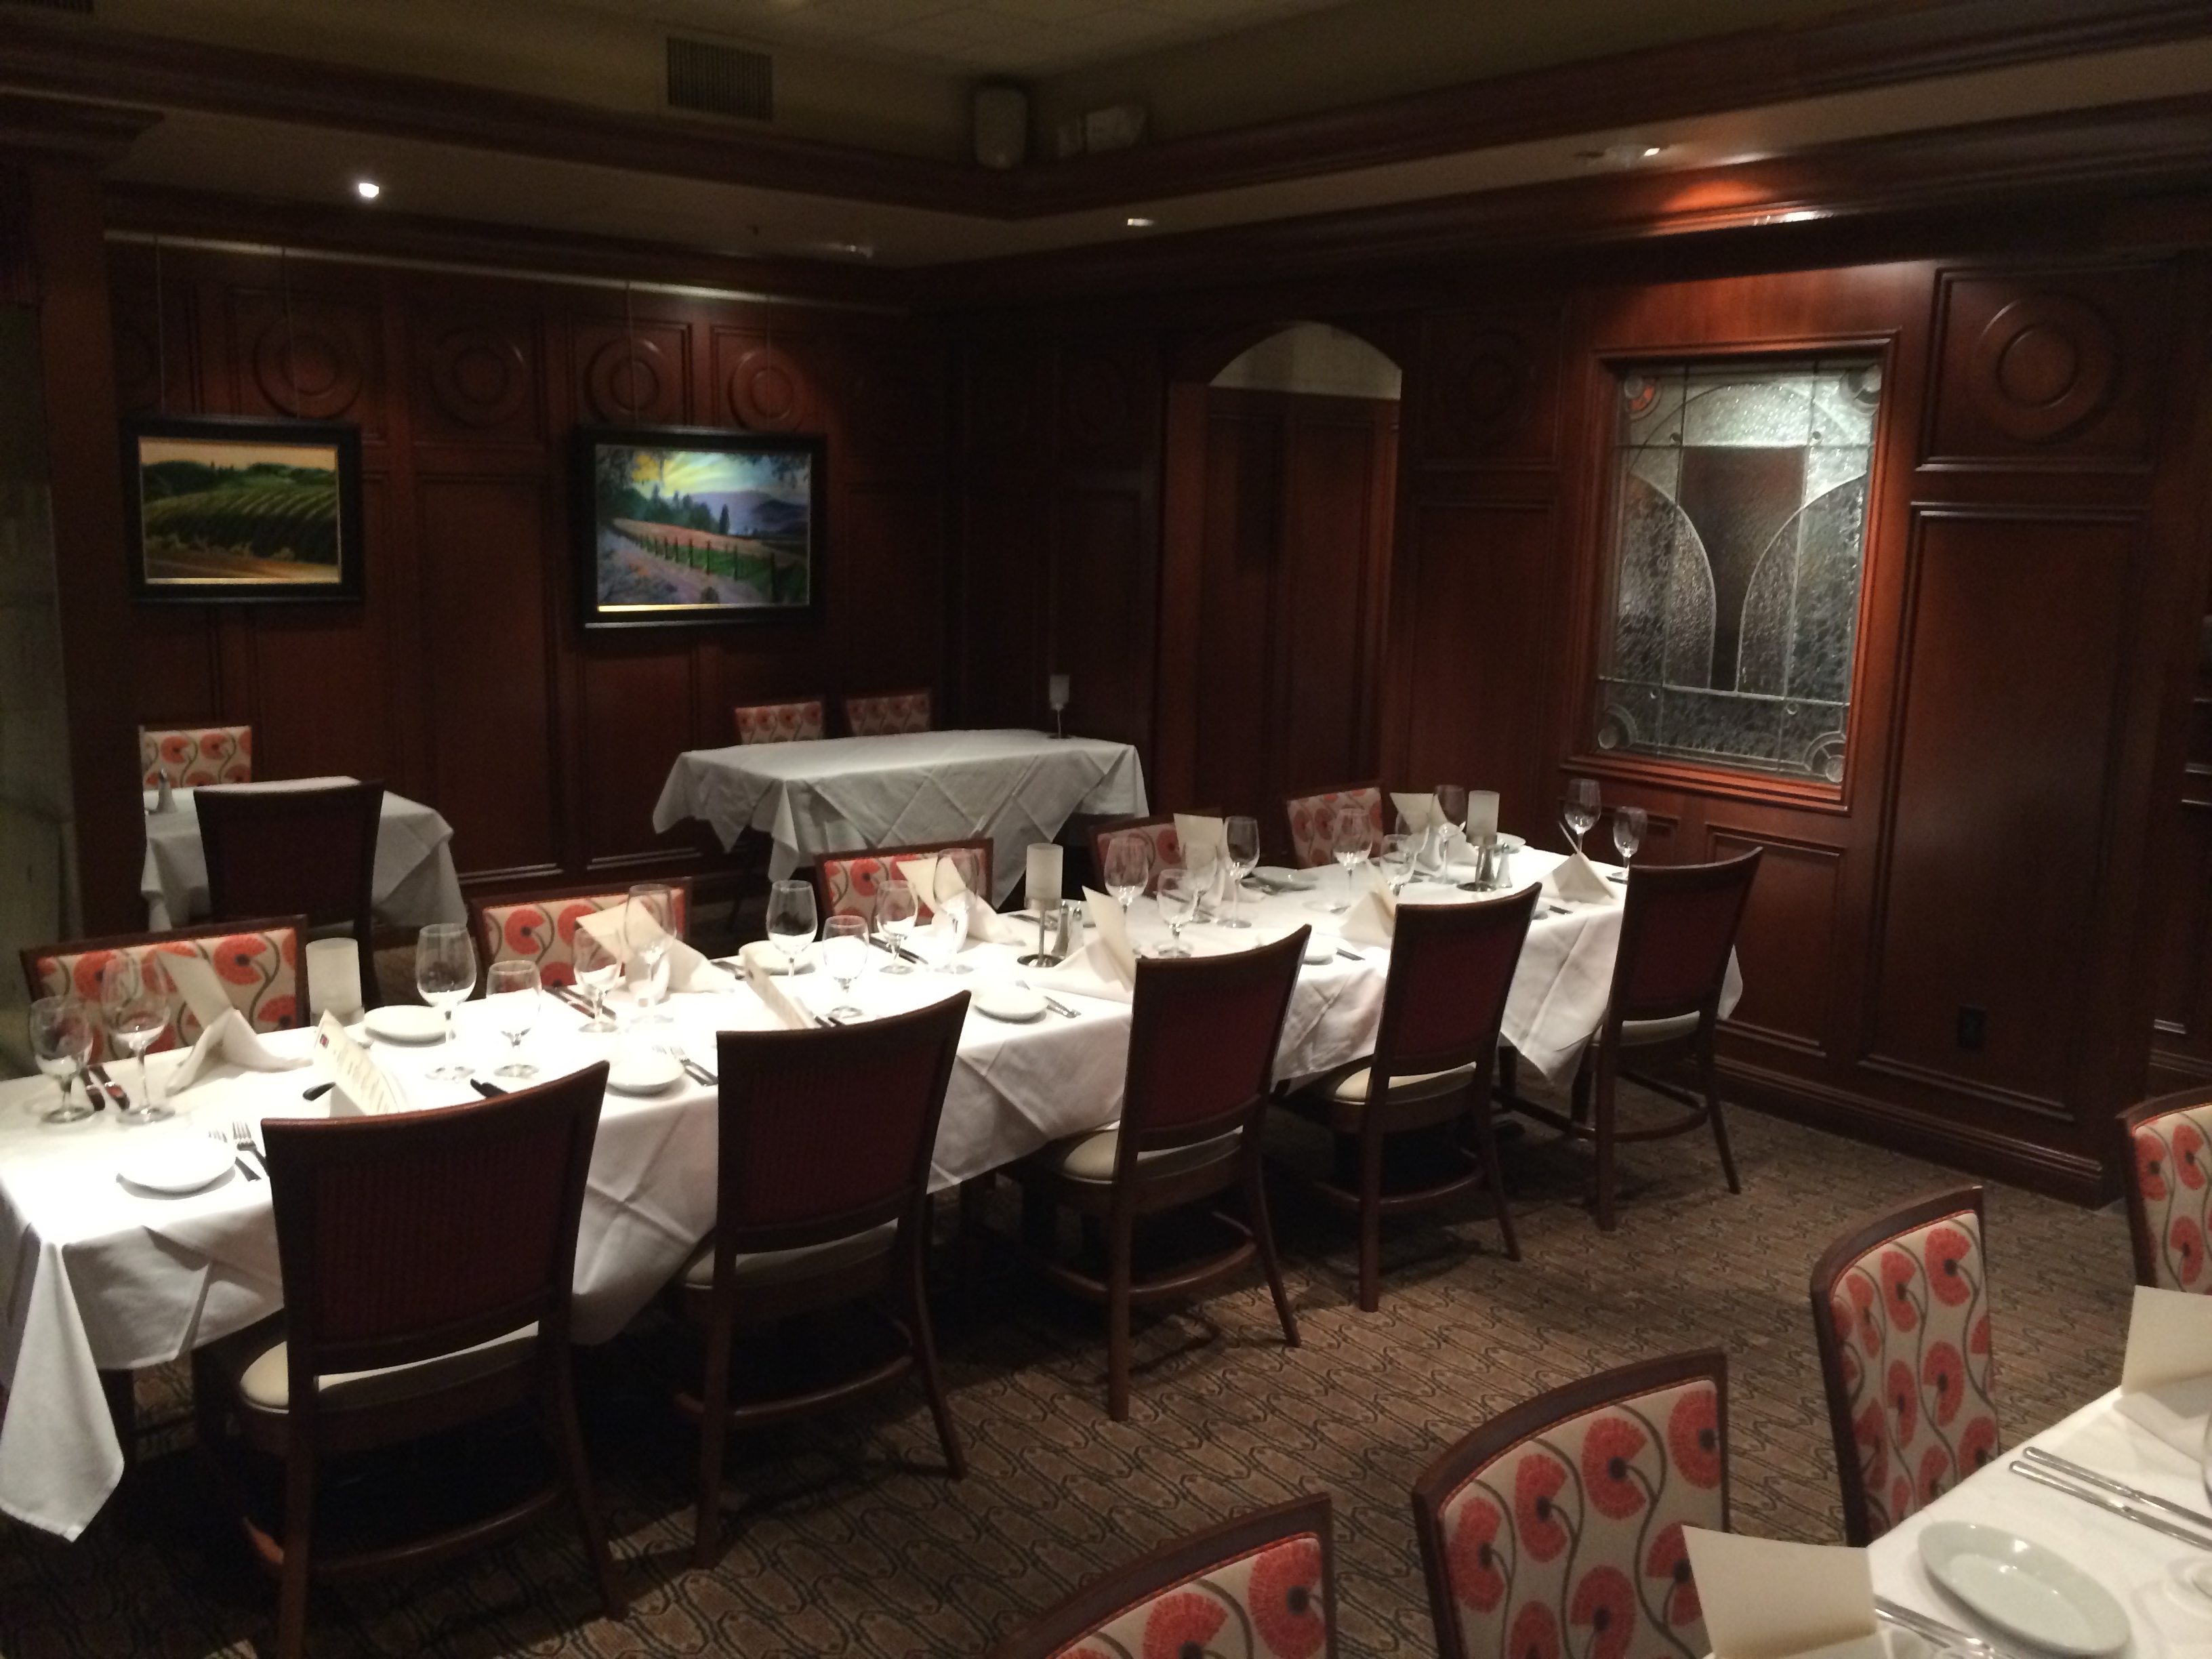 Photo #4 Sacramento Room at Ruth's Chris Steak House